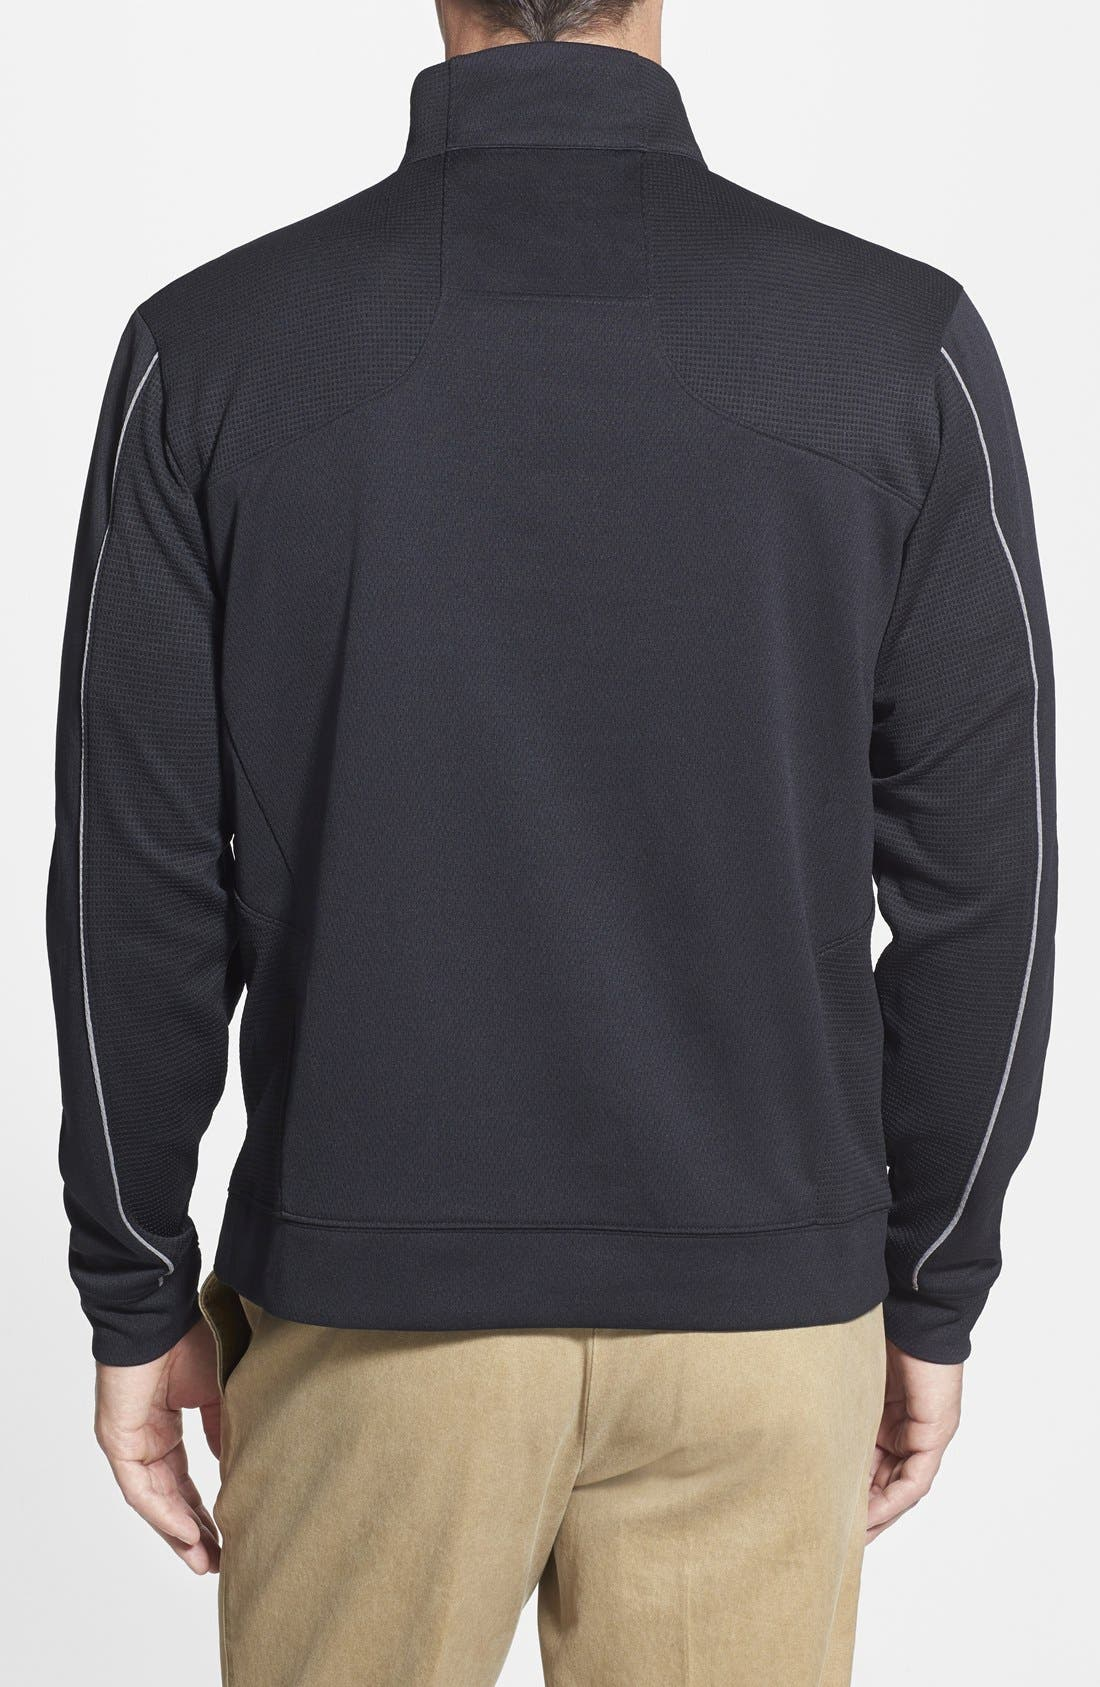 Alternate Image 2  - Cutter & Buck 'Pittsburgh Steelers - Edge' DryTec Moisture Wicking Half Zip Pullover